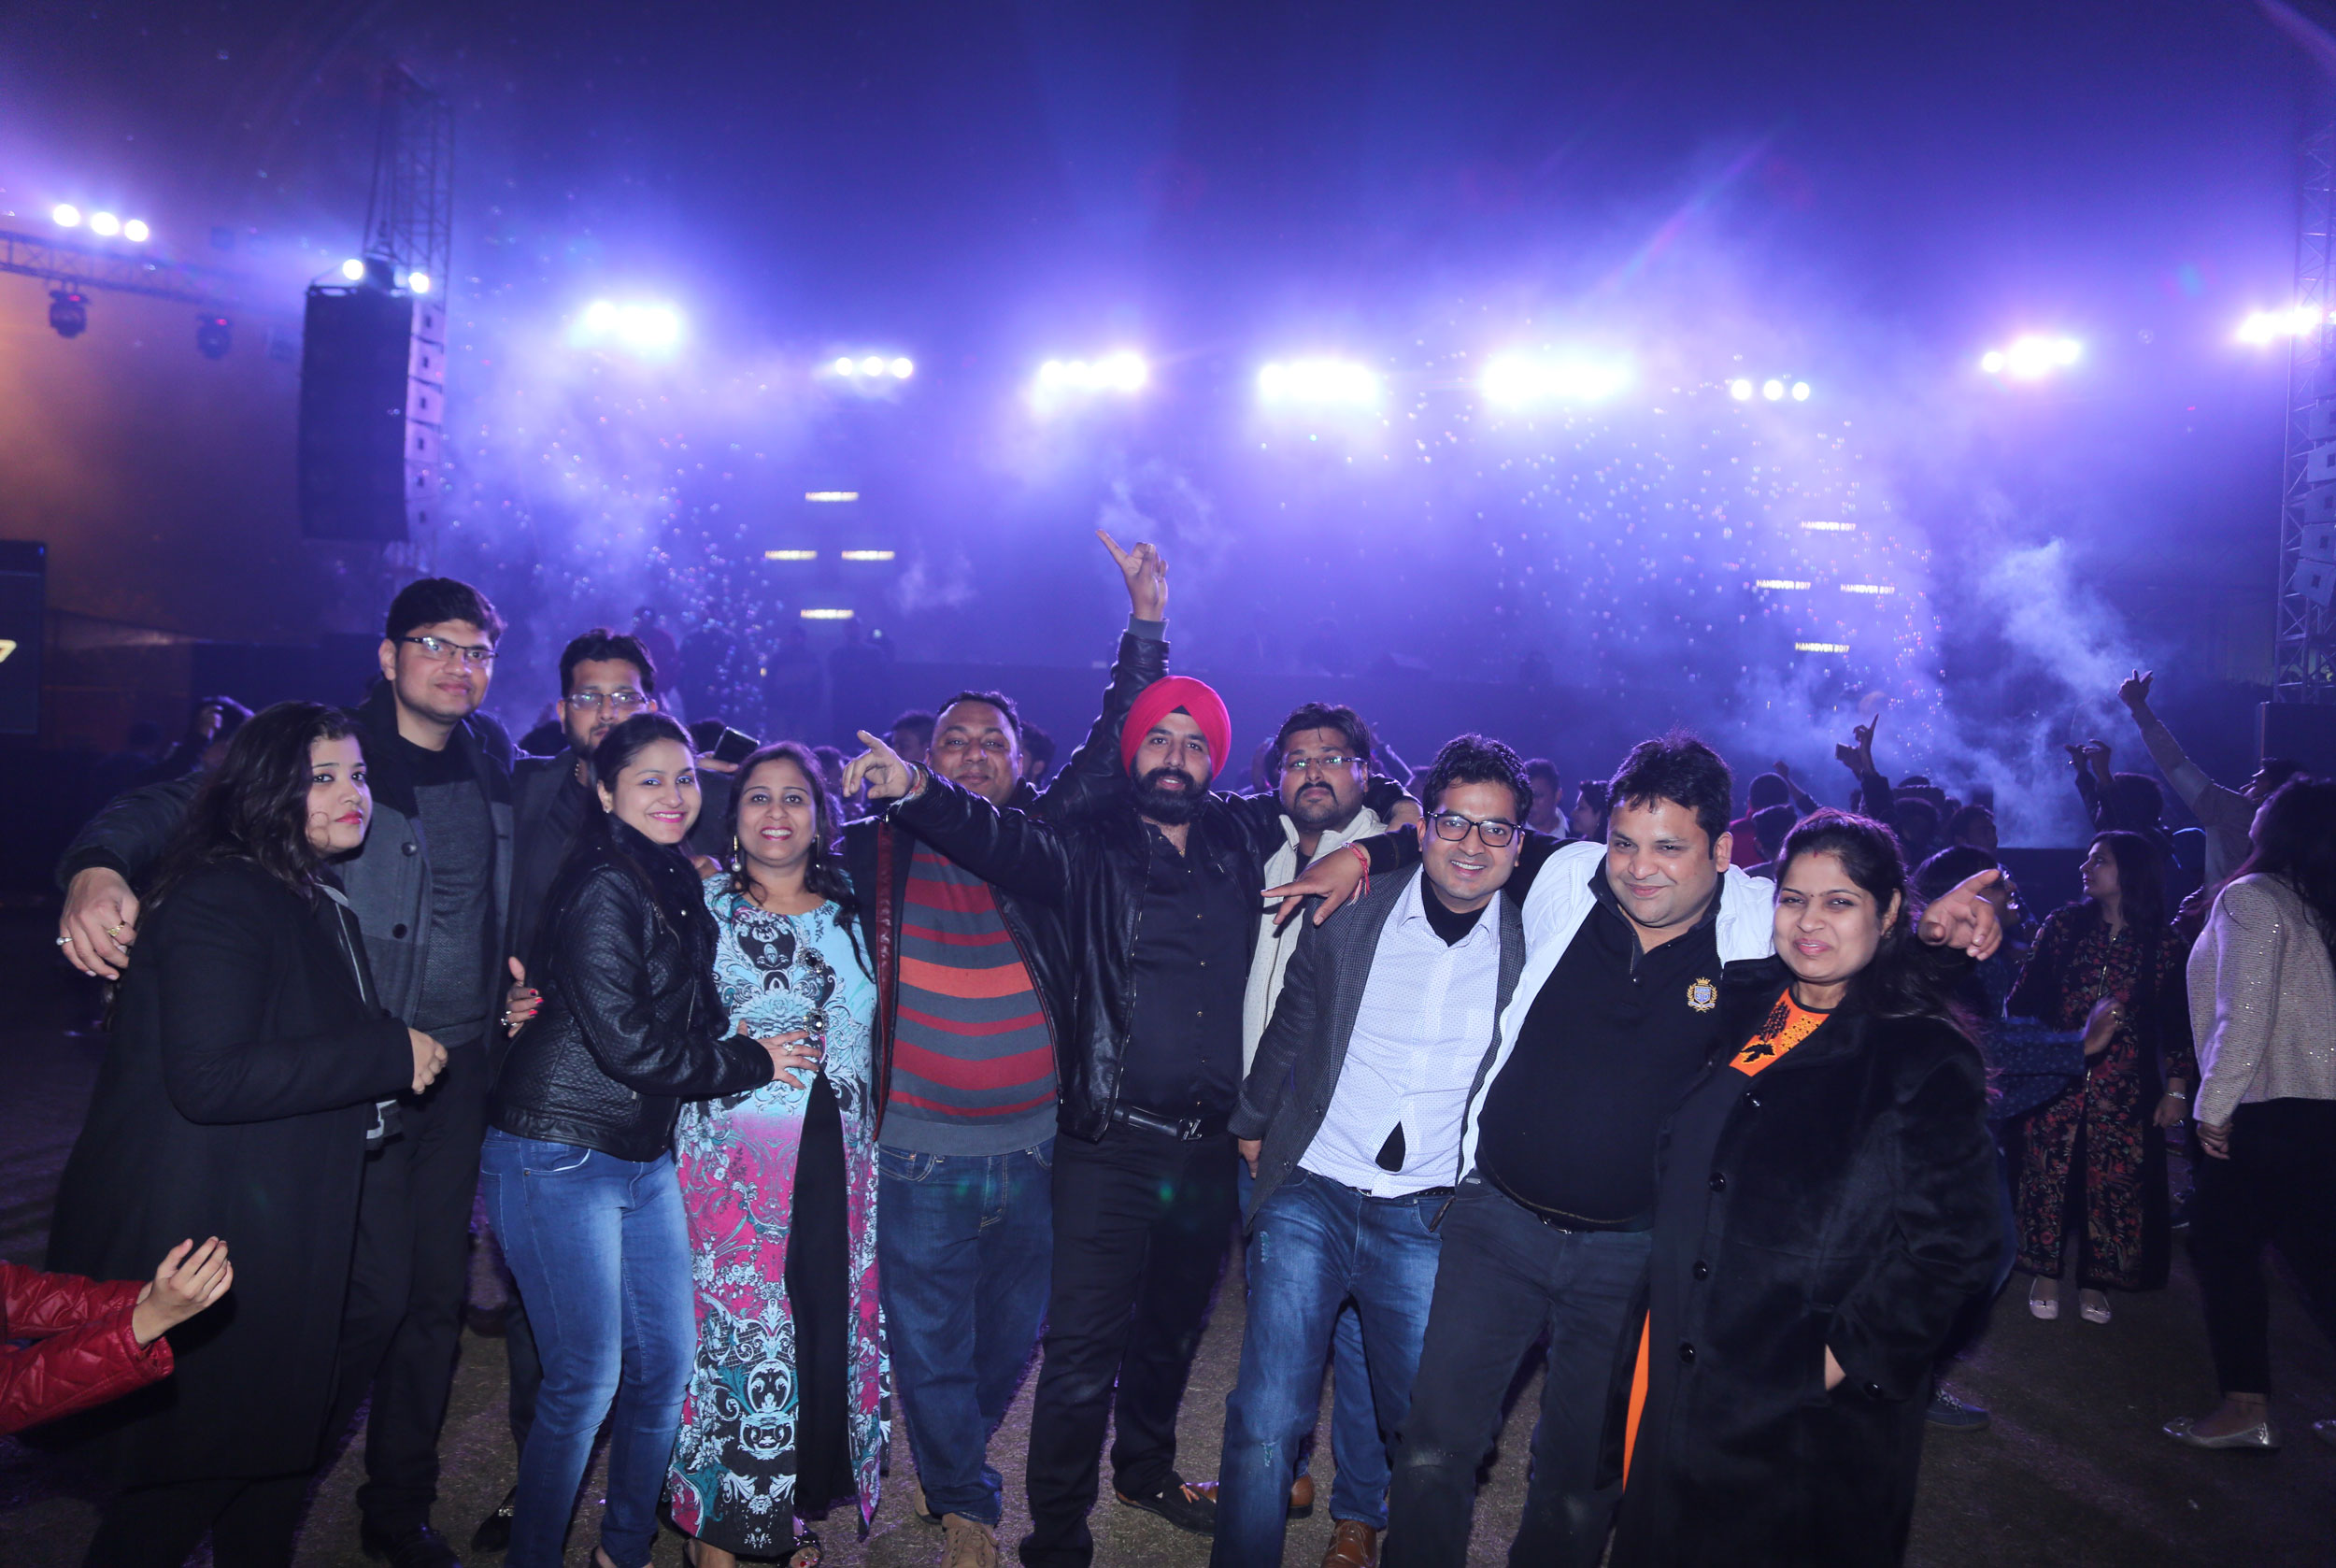 Previous Year Images of New Year Party